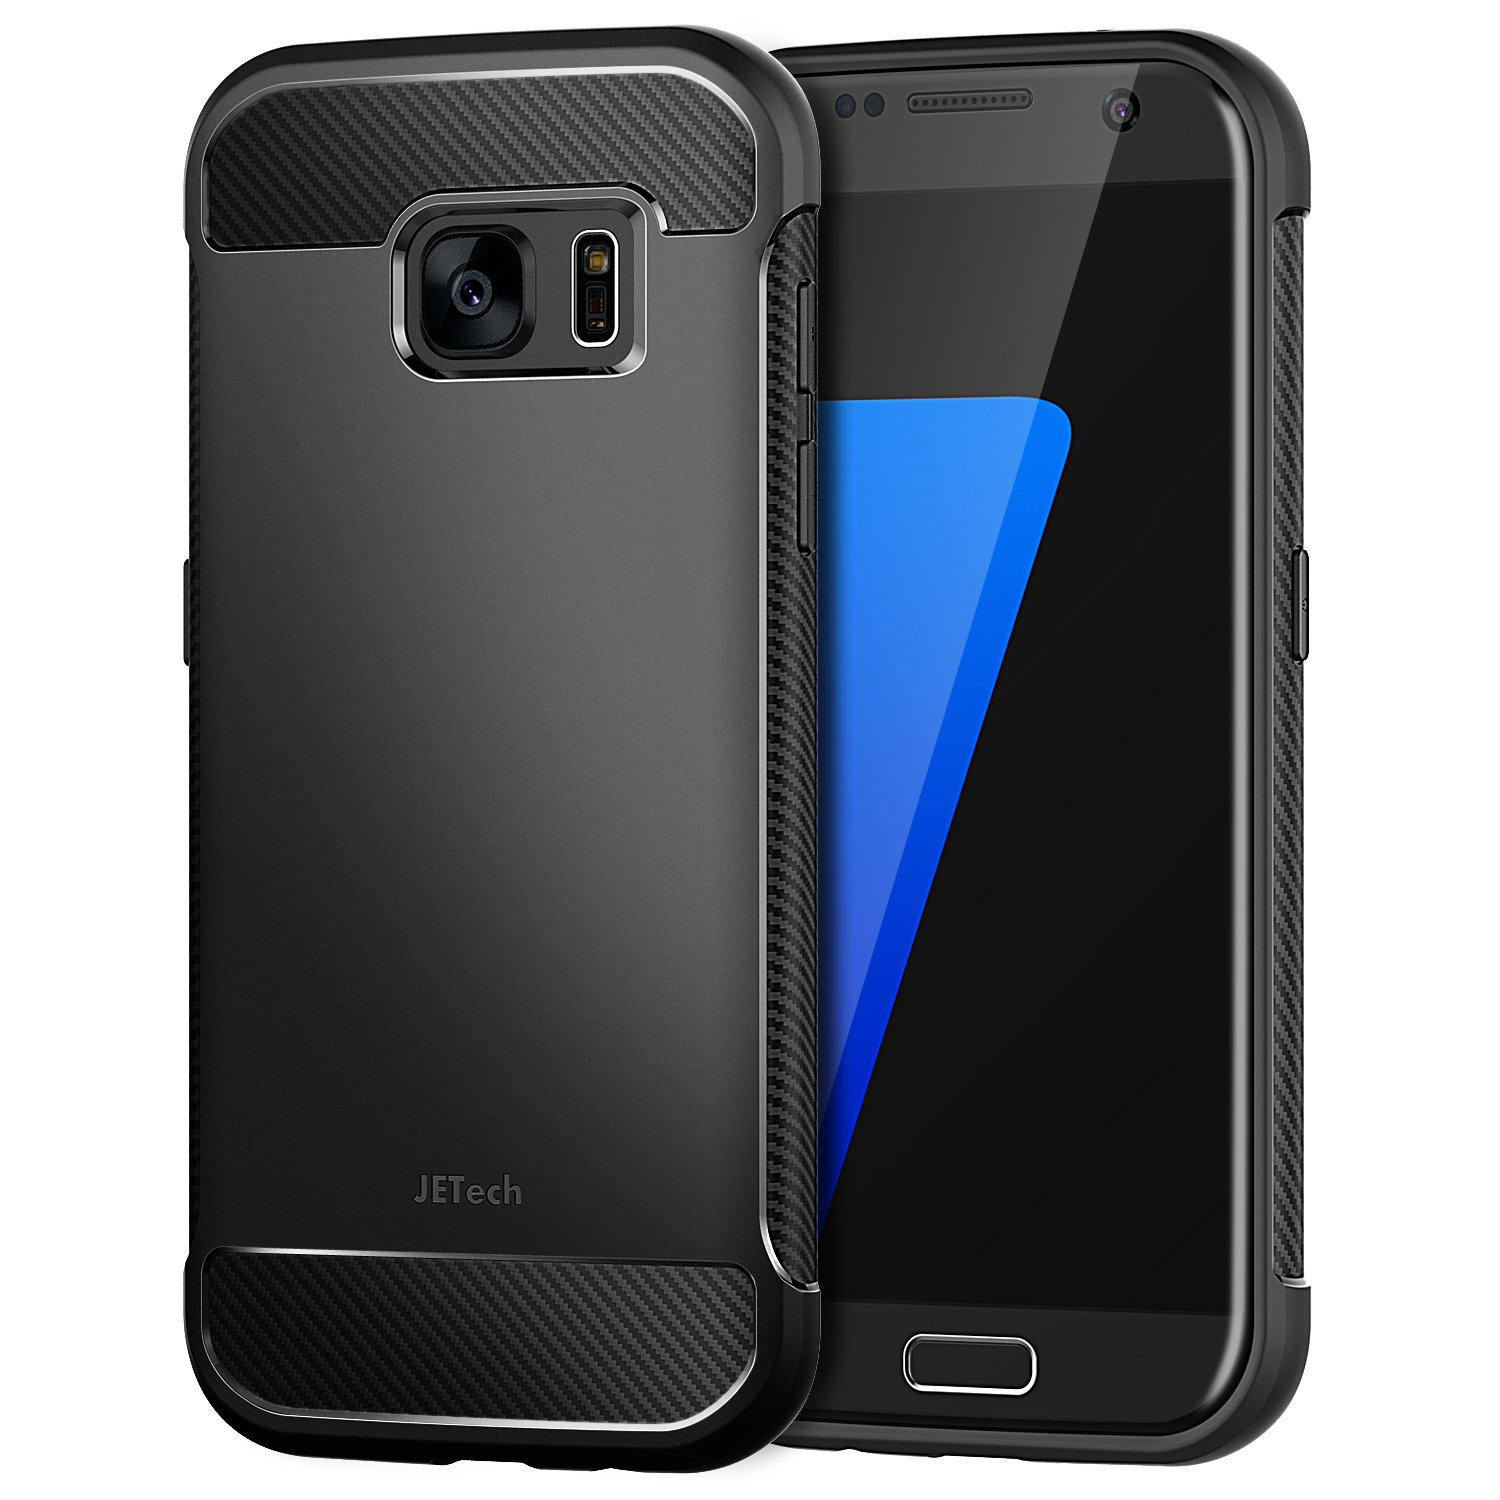 factory price ac0d2 04de6 JETech Case for Samsung Galaxy S7 Protective Cover with Shock-Absorption  and Carbon Fiber Design (Black)